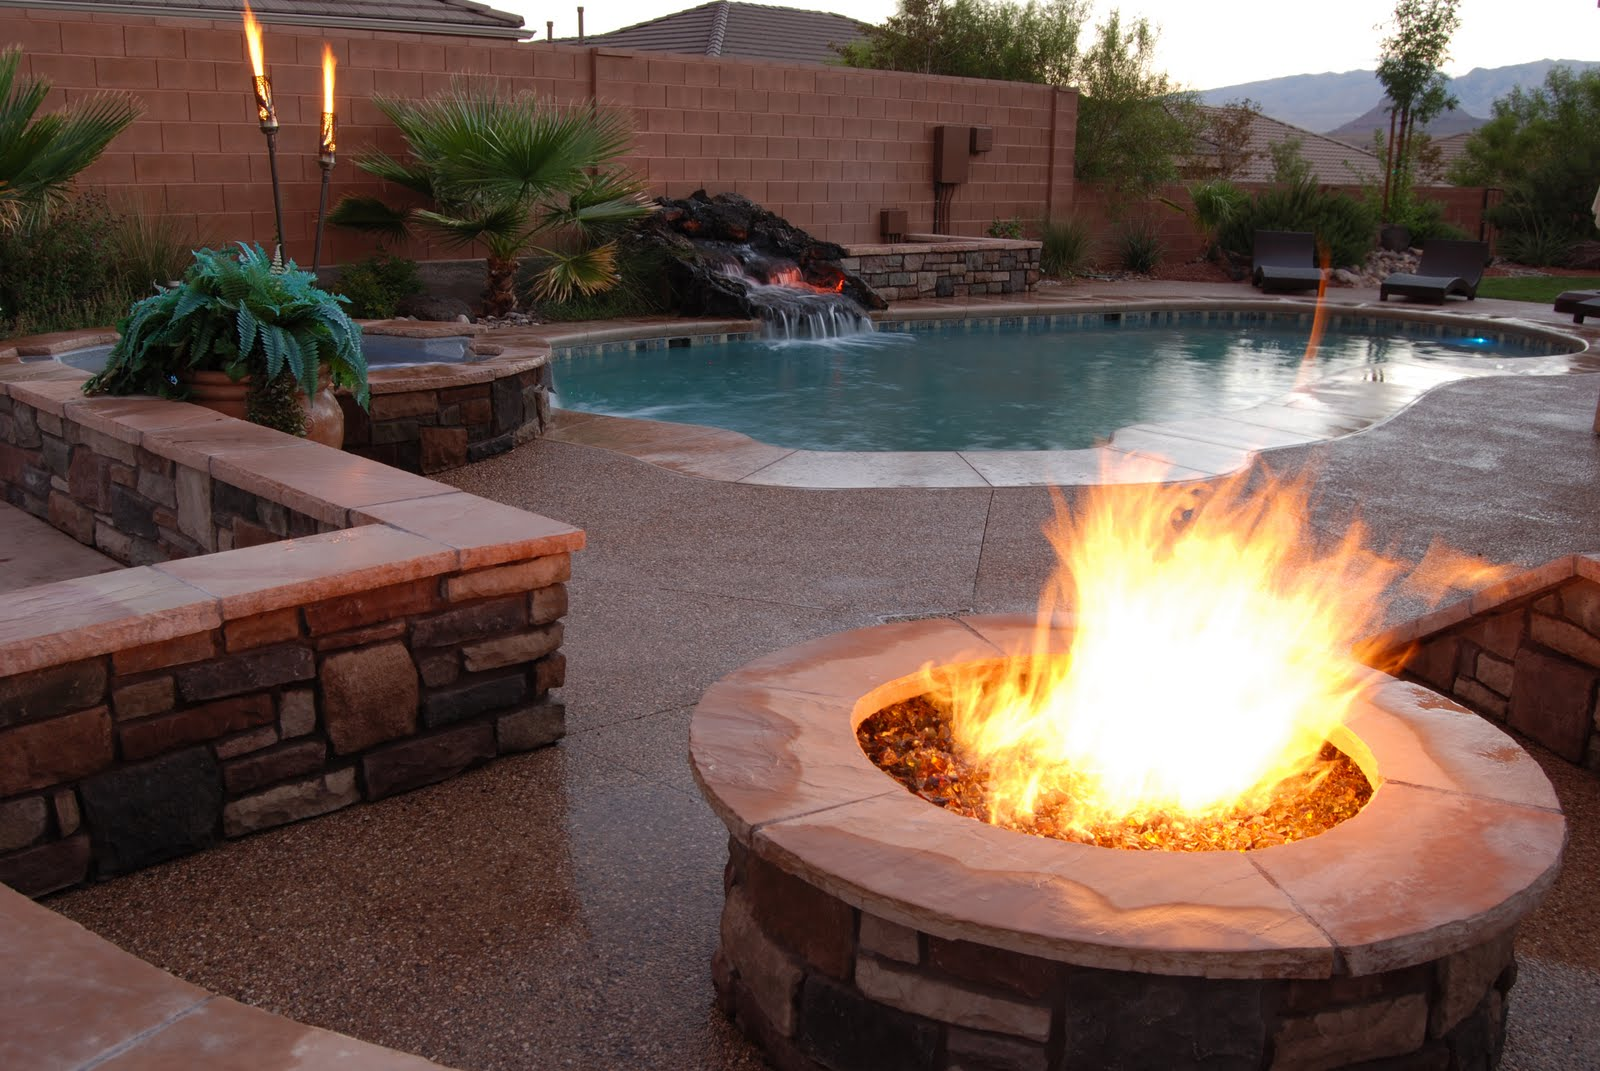 Gas piping gas tiki torches salt lake provo st george for Affordable pools st george utah